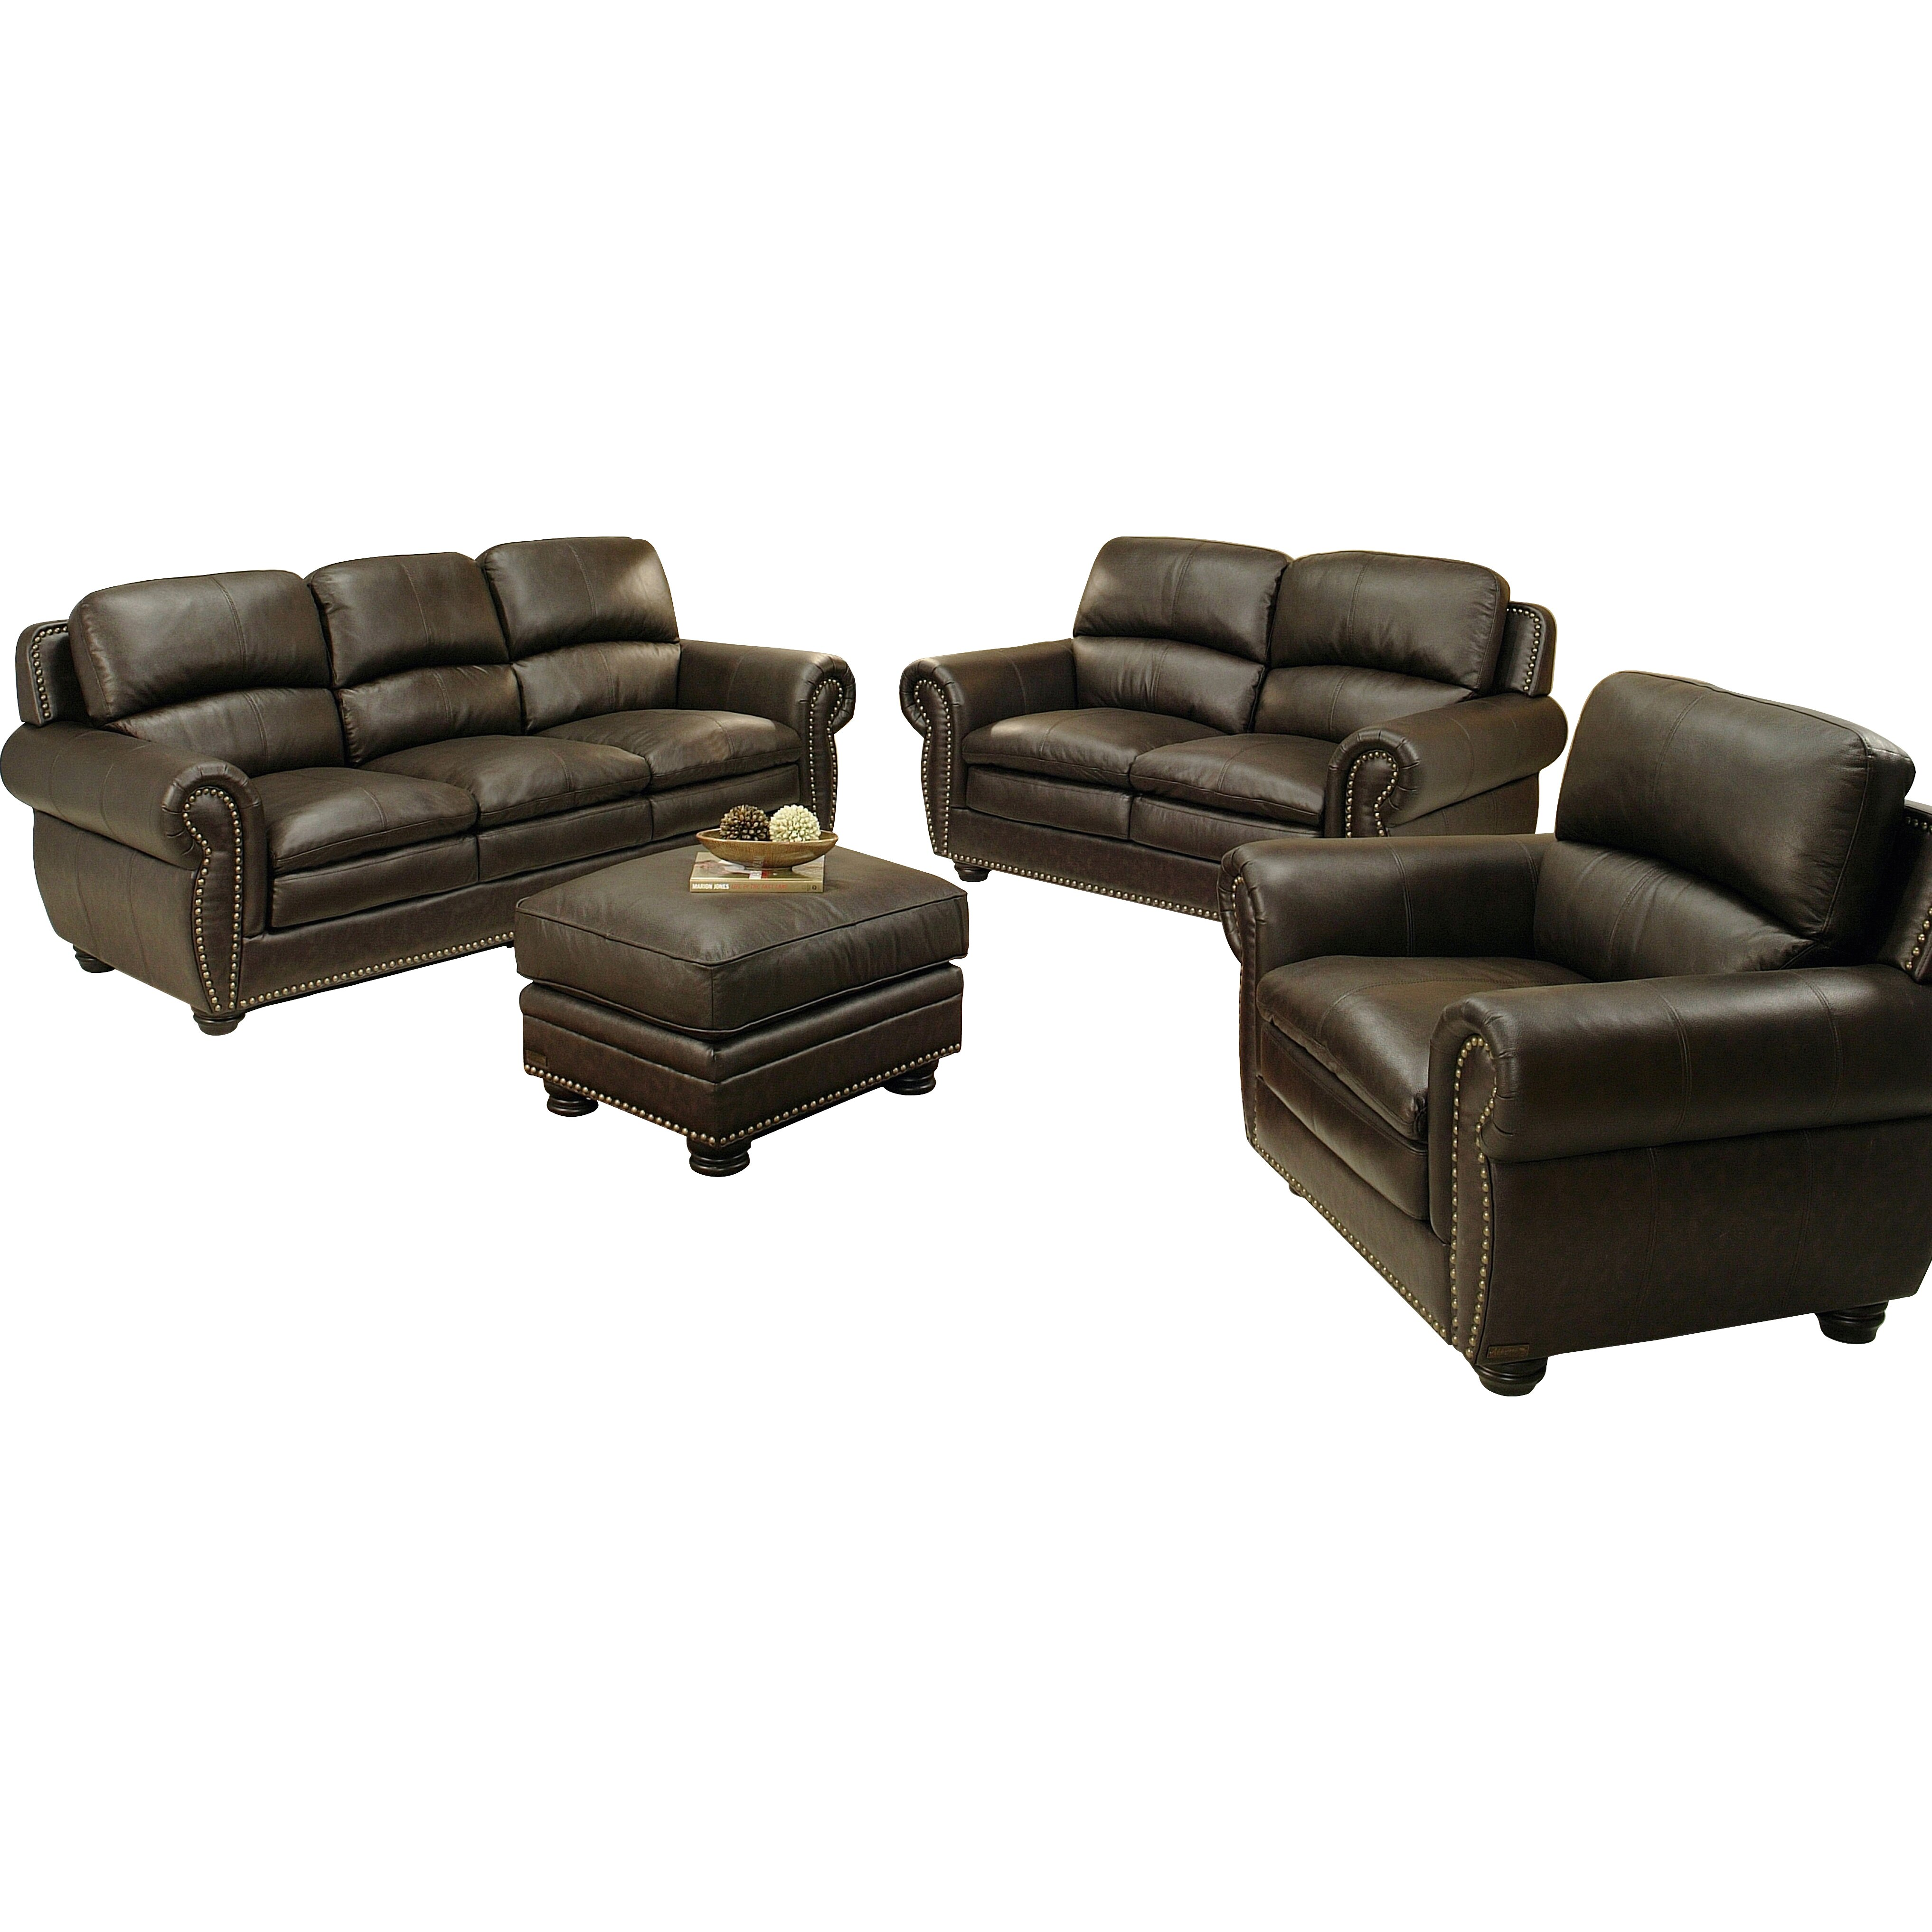 Abbyson Living Ridgecrest 4 Piece Top Grain Leather Living Room Collection Wayfair Supply